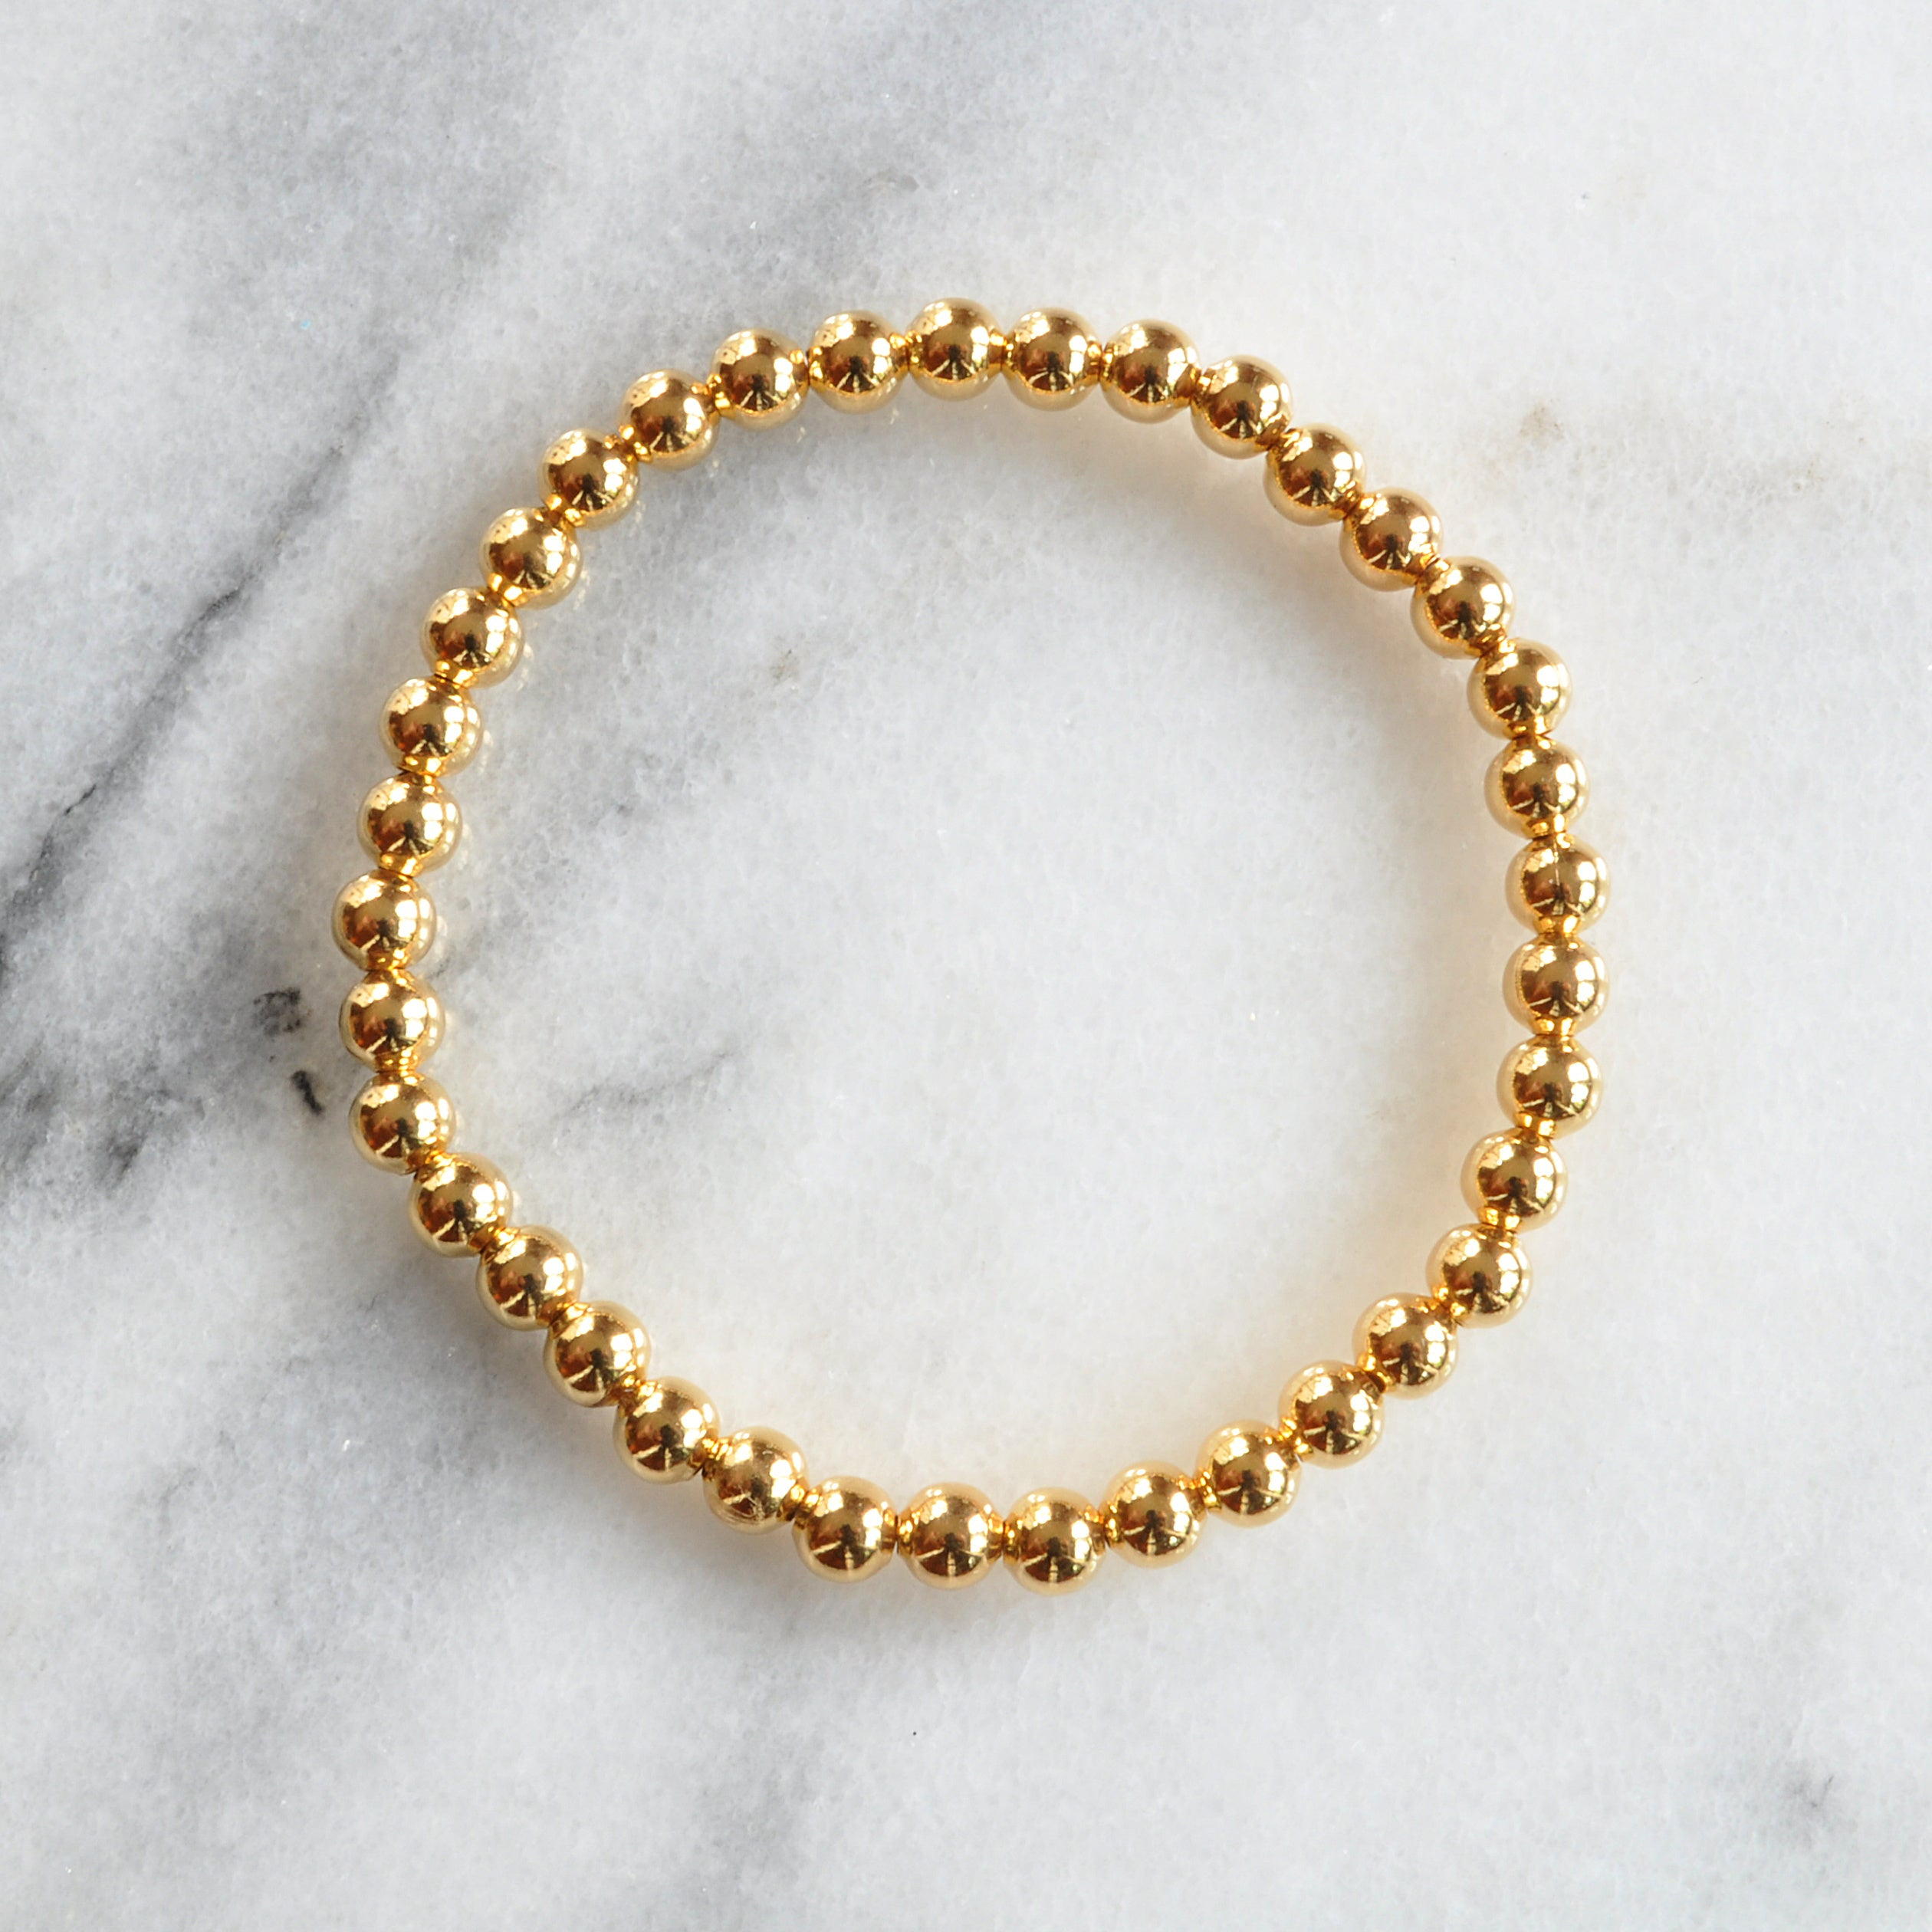 Libby & Smee gold plated bangle bracelet